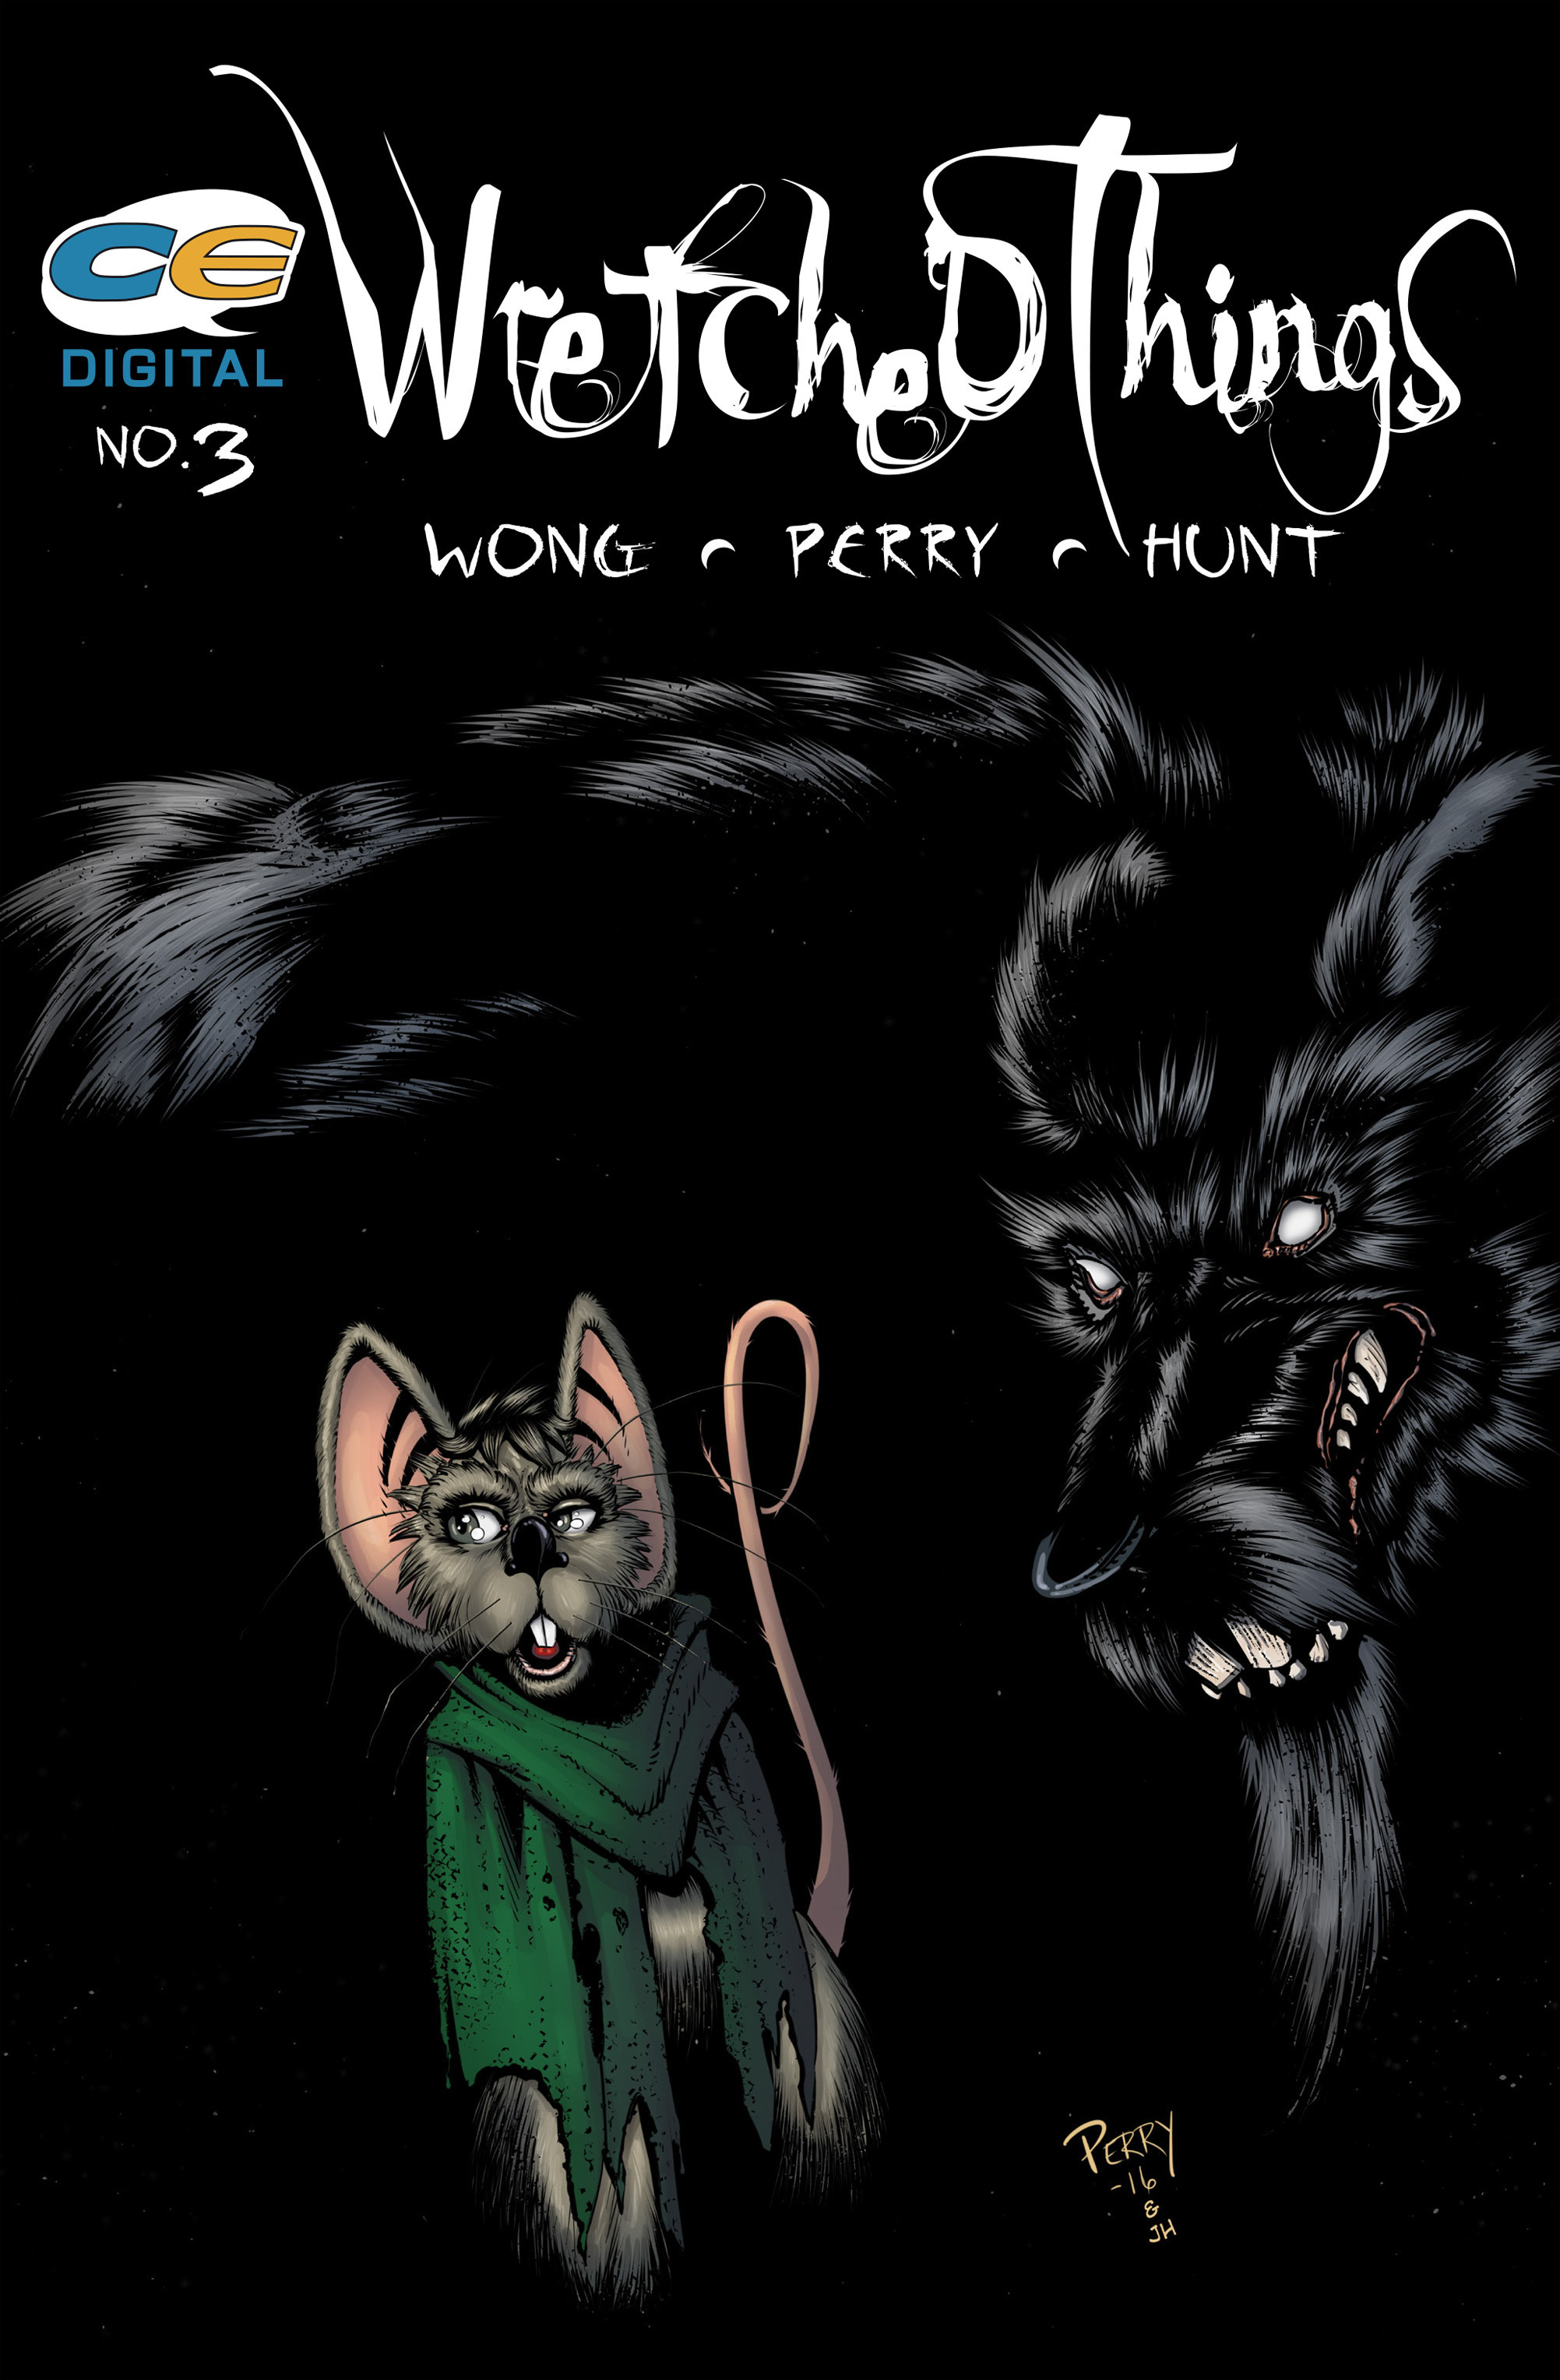 Read online Wretched Things comic -  Issue #3 - 1